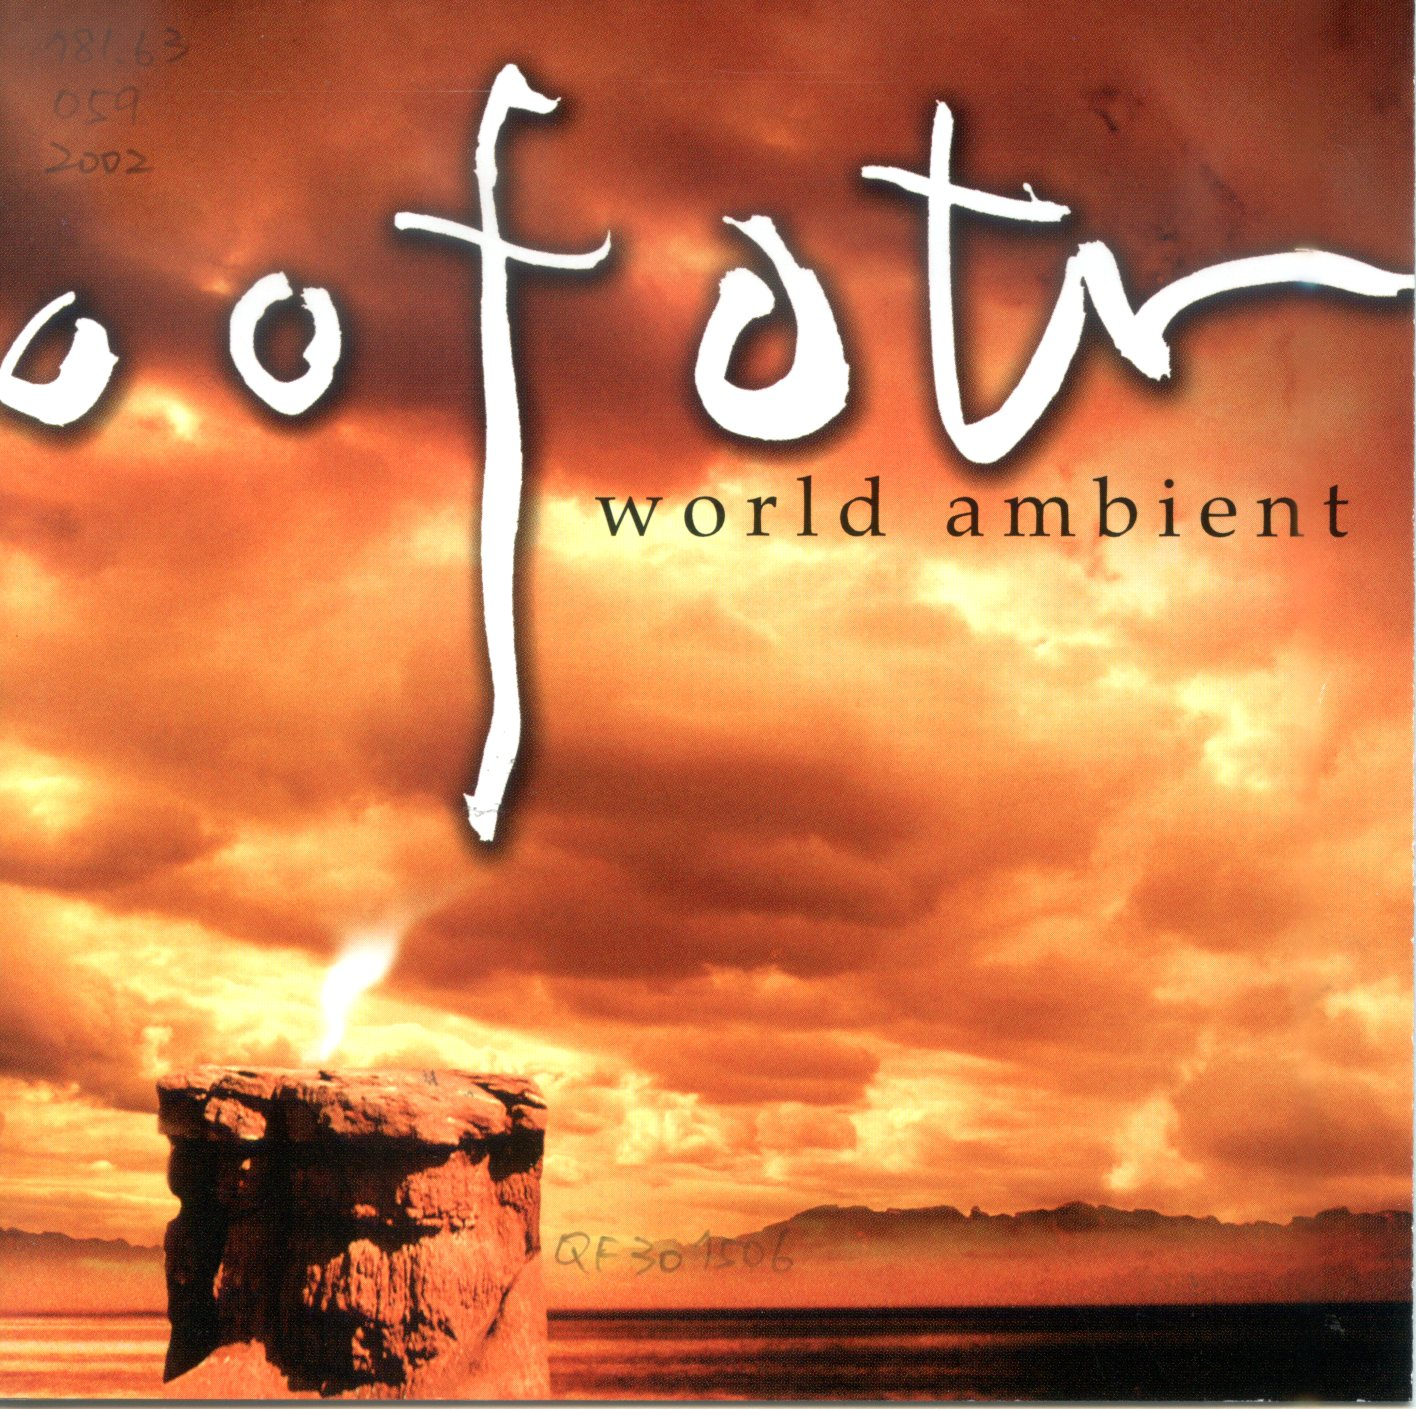 Oofotr world ambient.